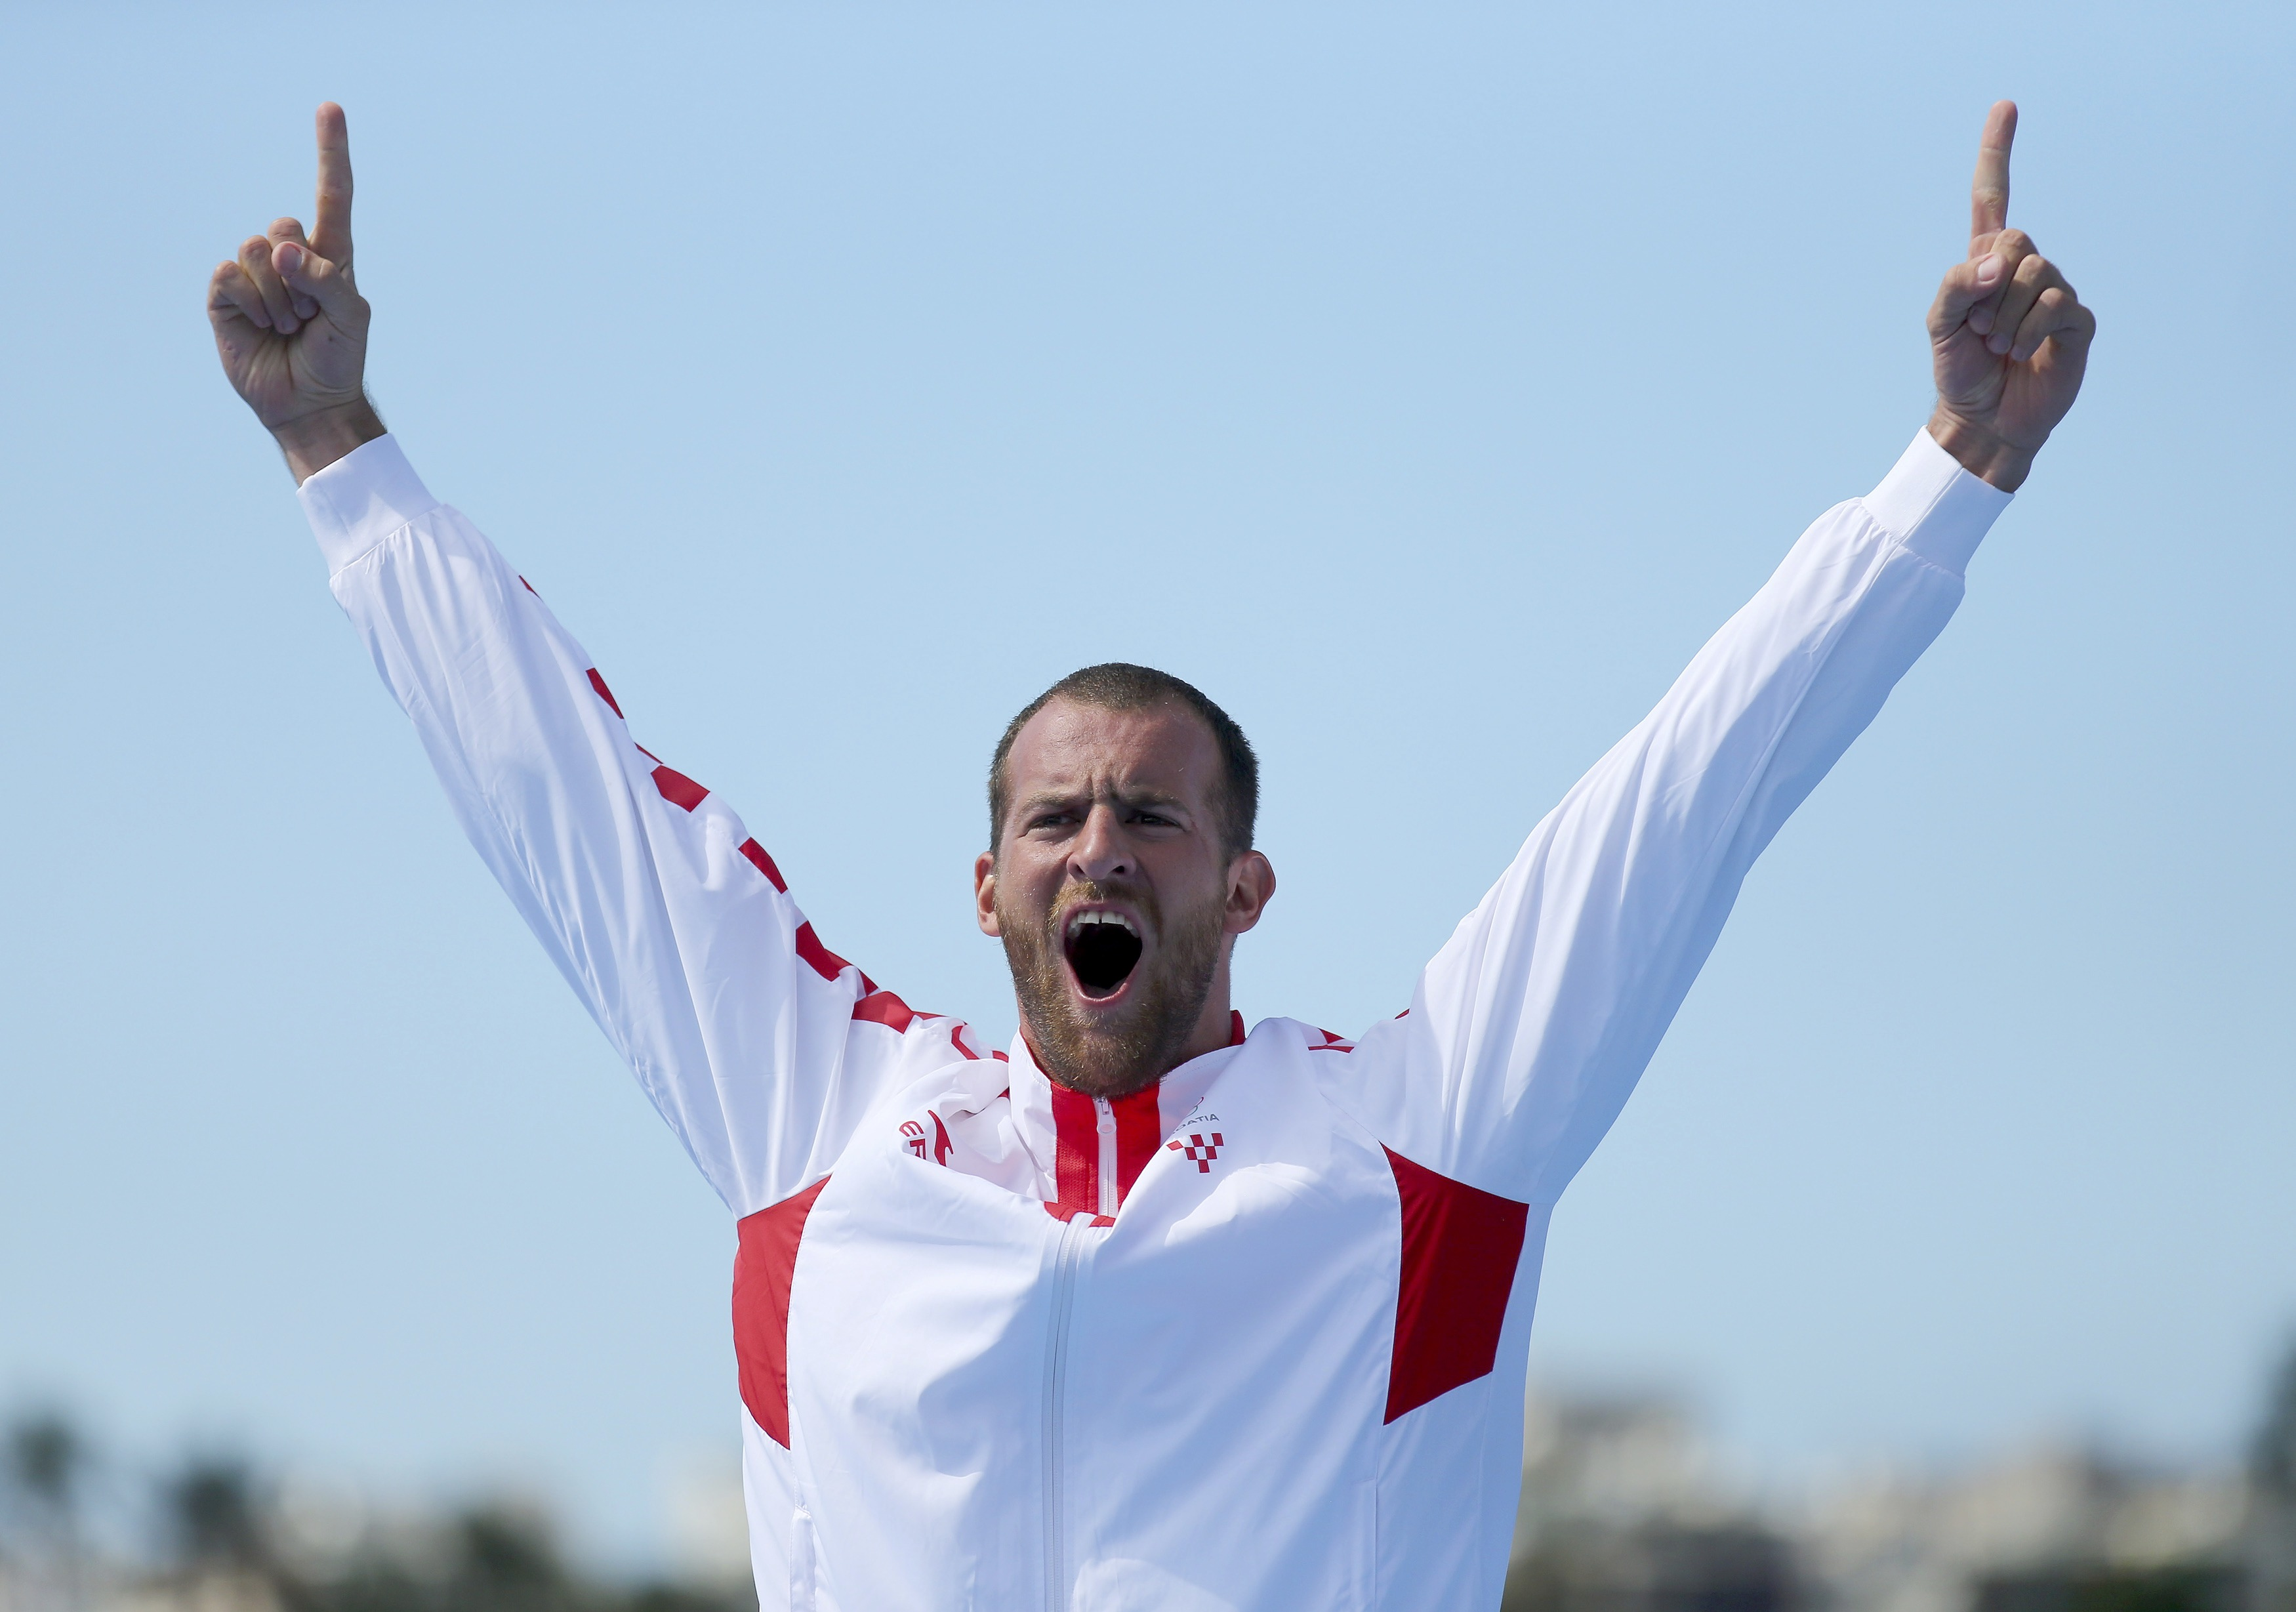 2016 Rio Olympics - Rowing - Final - Men's Single Sculls Victory Ceremony - Lagoa Stadium - Rio De Janeiro, Brazil - 13/08/2016. Silver medalist Damir Martin (CRO) of Croatia reacts. REUTERS/Carlos Barria   FOR EDITORIAL USE ONLY. NOT FOR SALE FOR MARKETING OR ADVERTISING CAMPAIGNS.